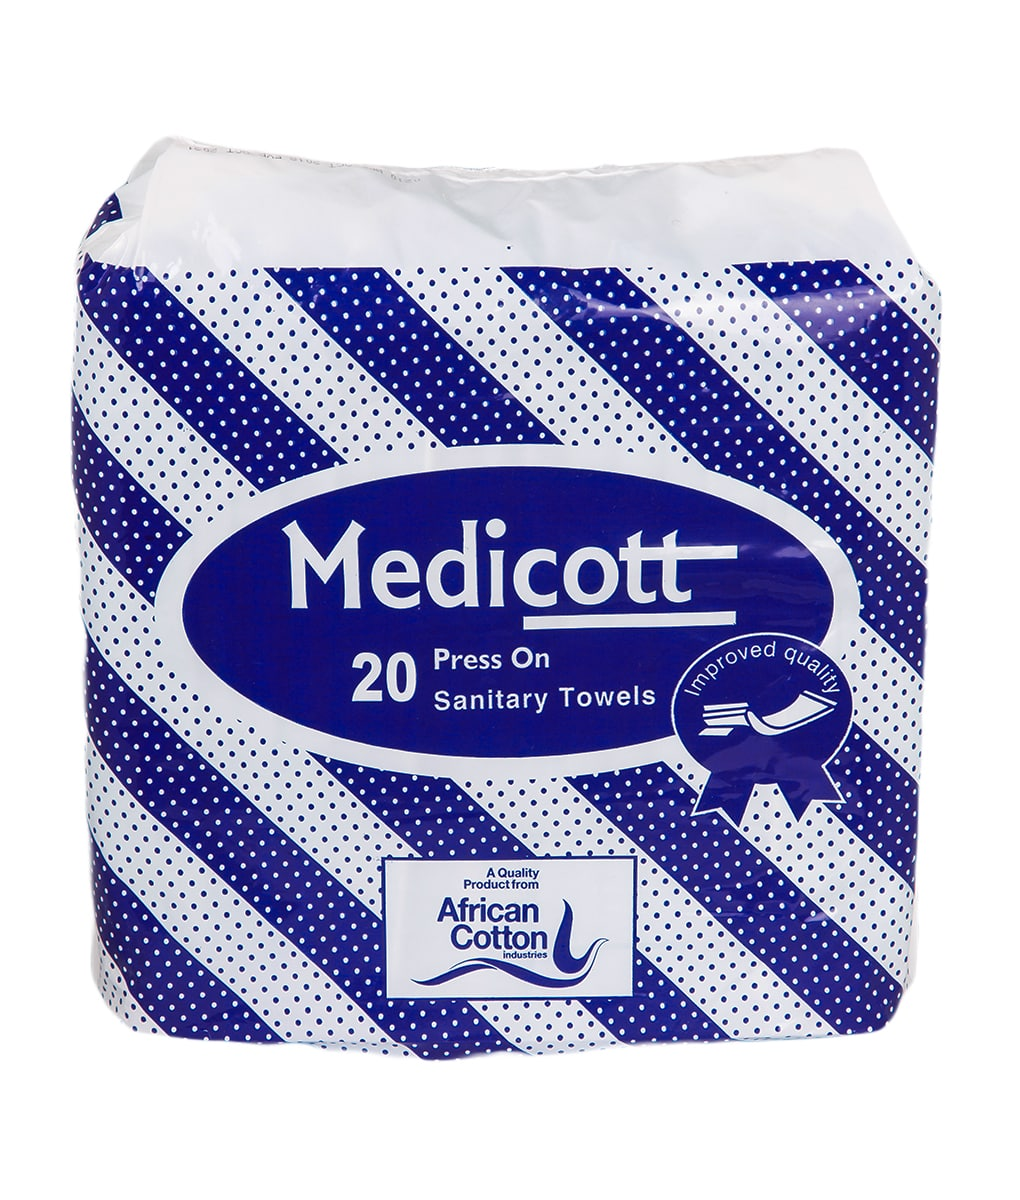 Medicott Sanitary Towels